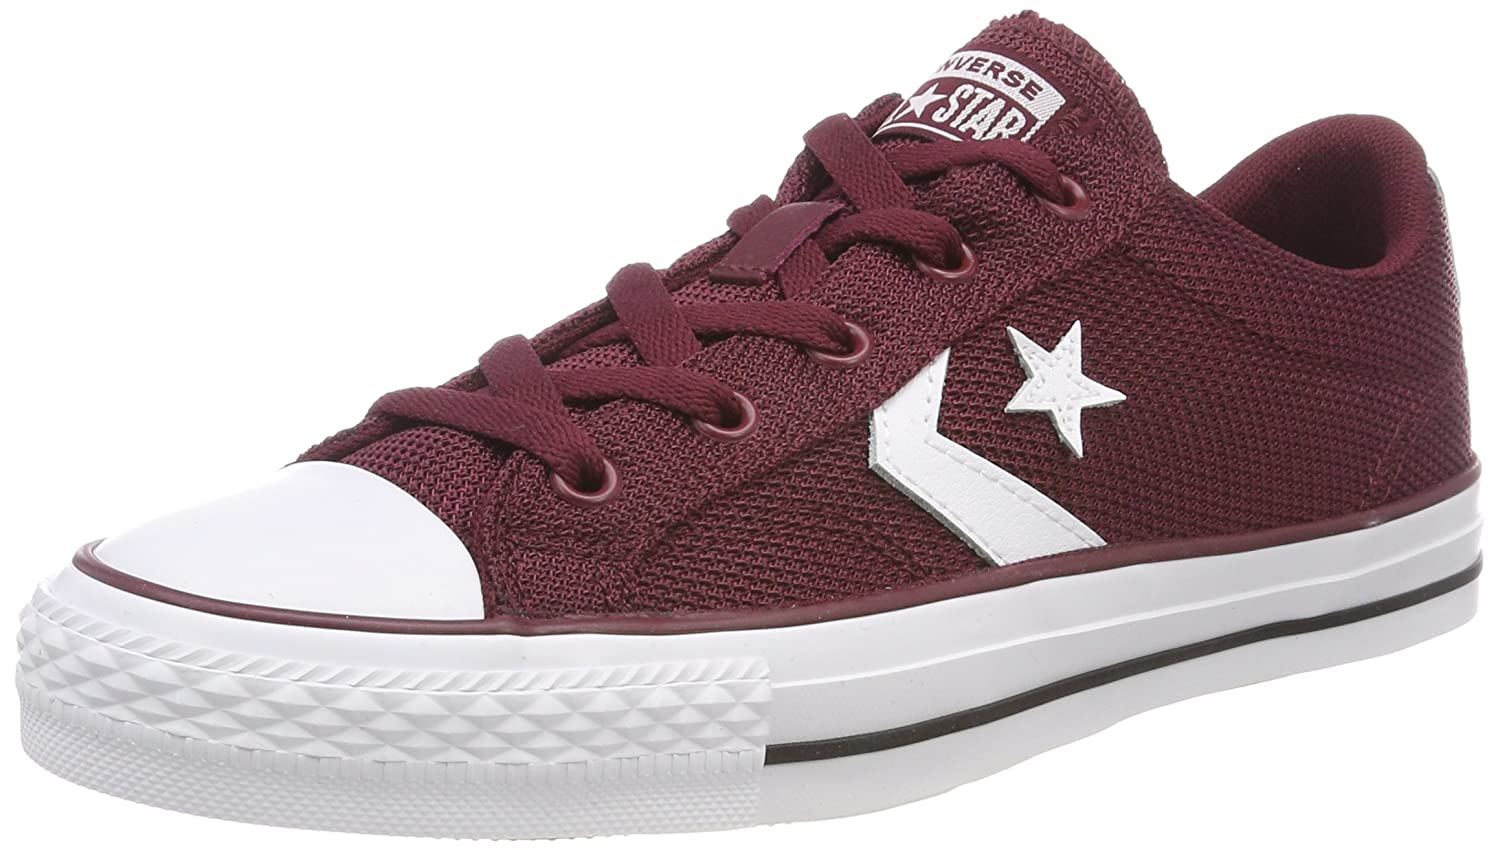 Converse Unisex-Erwachsene Star Player OX Dark Burgundy/White Sneaker  44 EU|Rot (Dark Burgundy/White 628)